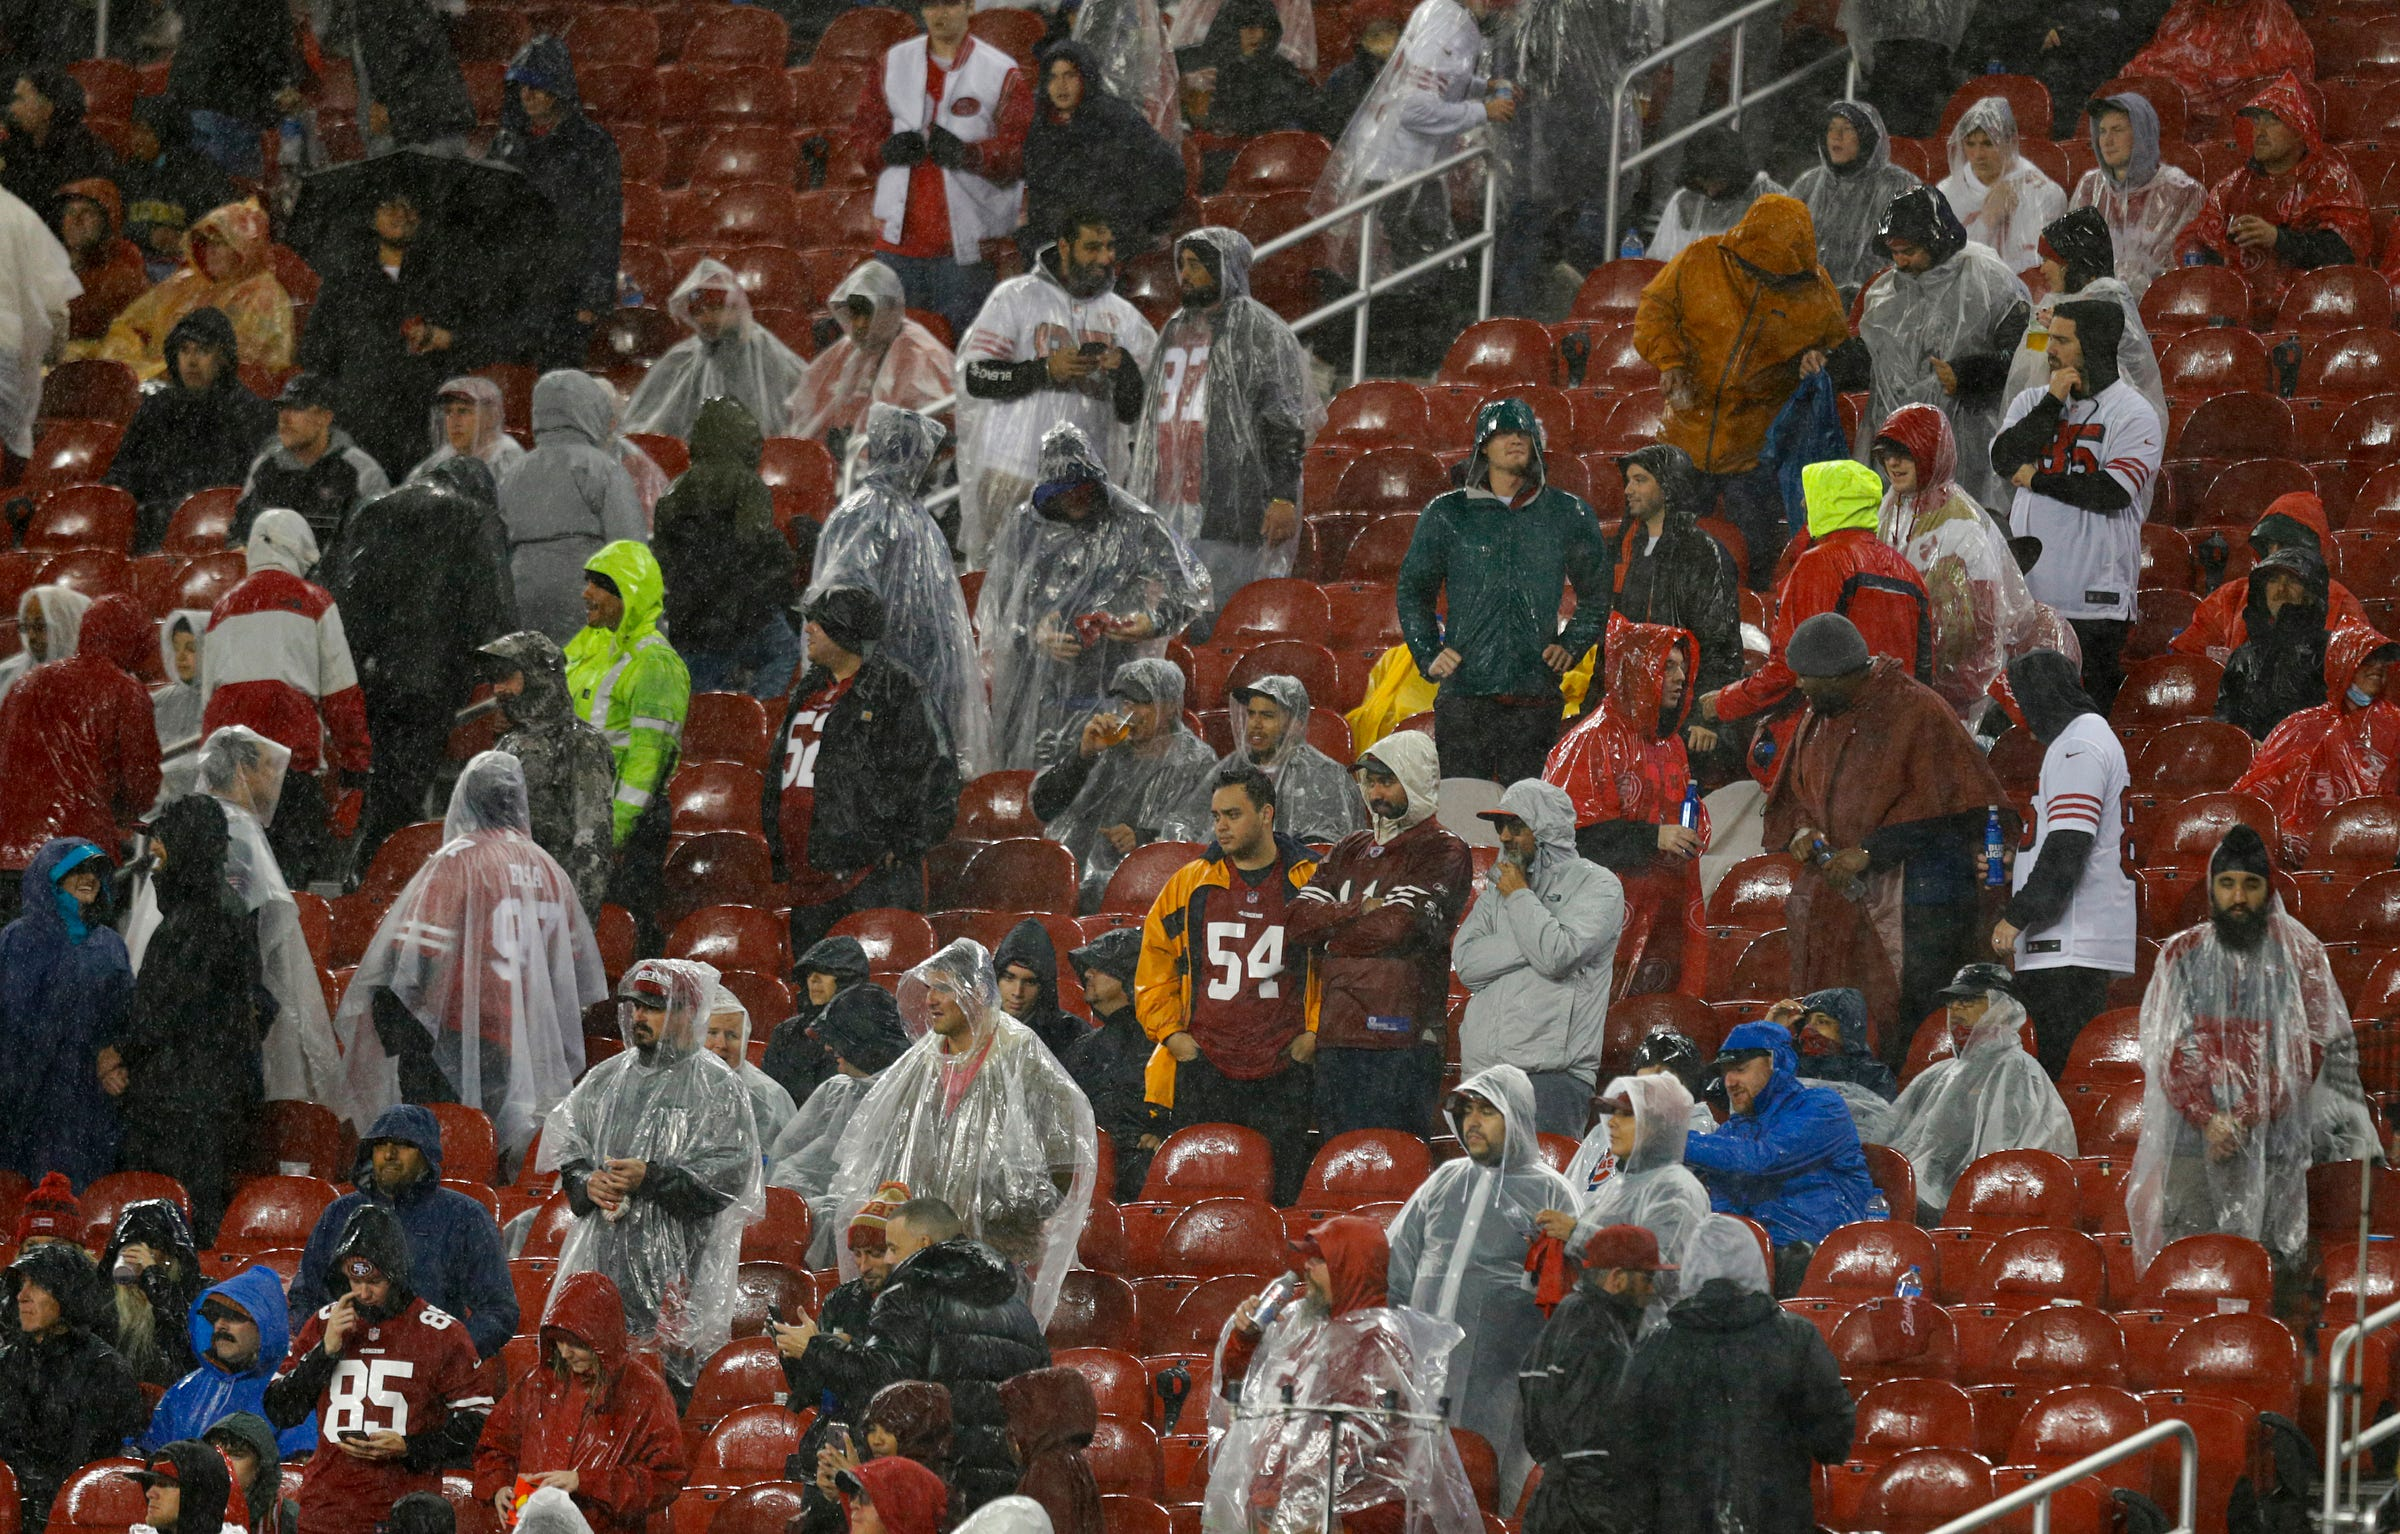 How a bomb cyclone and atmosphere river led to a wild Colts victory